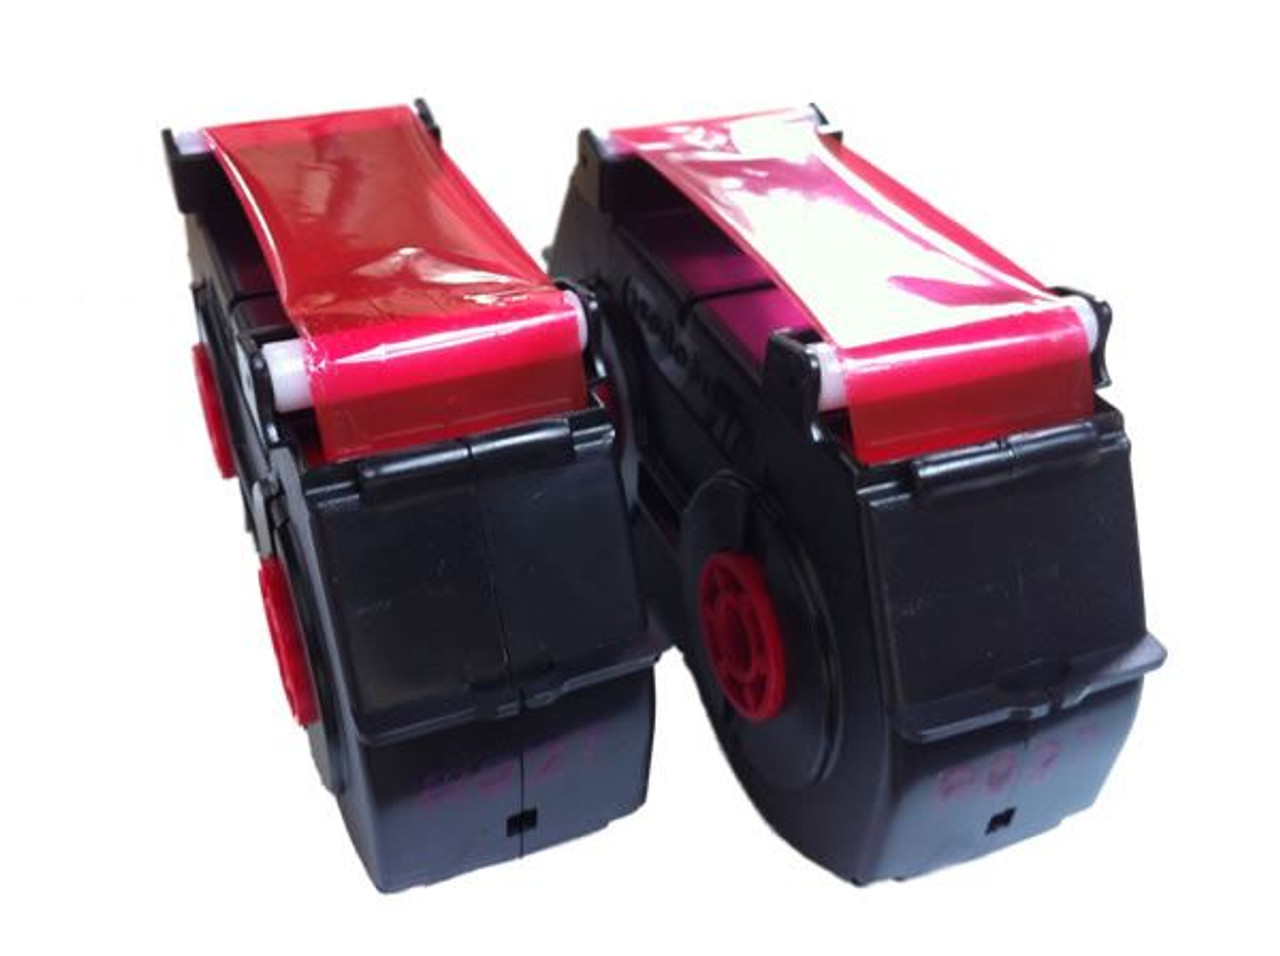 Compatible NEOPOST / QUADIENT SM22 / SM26 Franking Machine Ink Cassette Twin Pack - RED